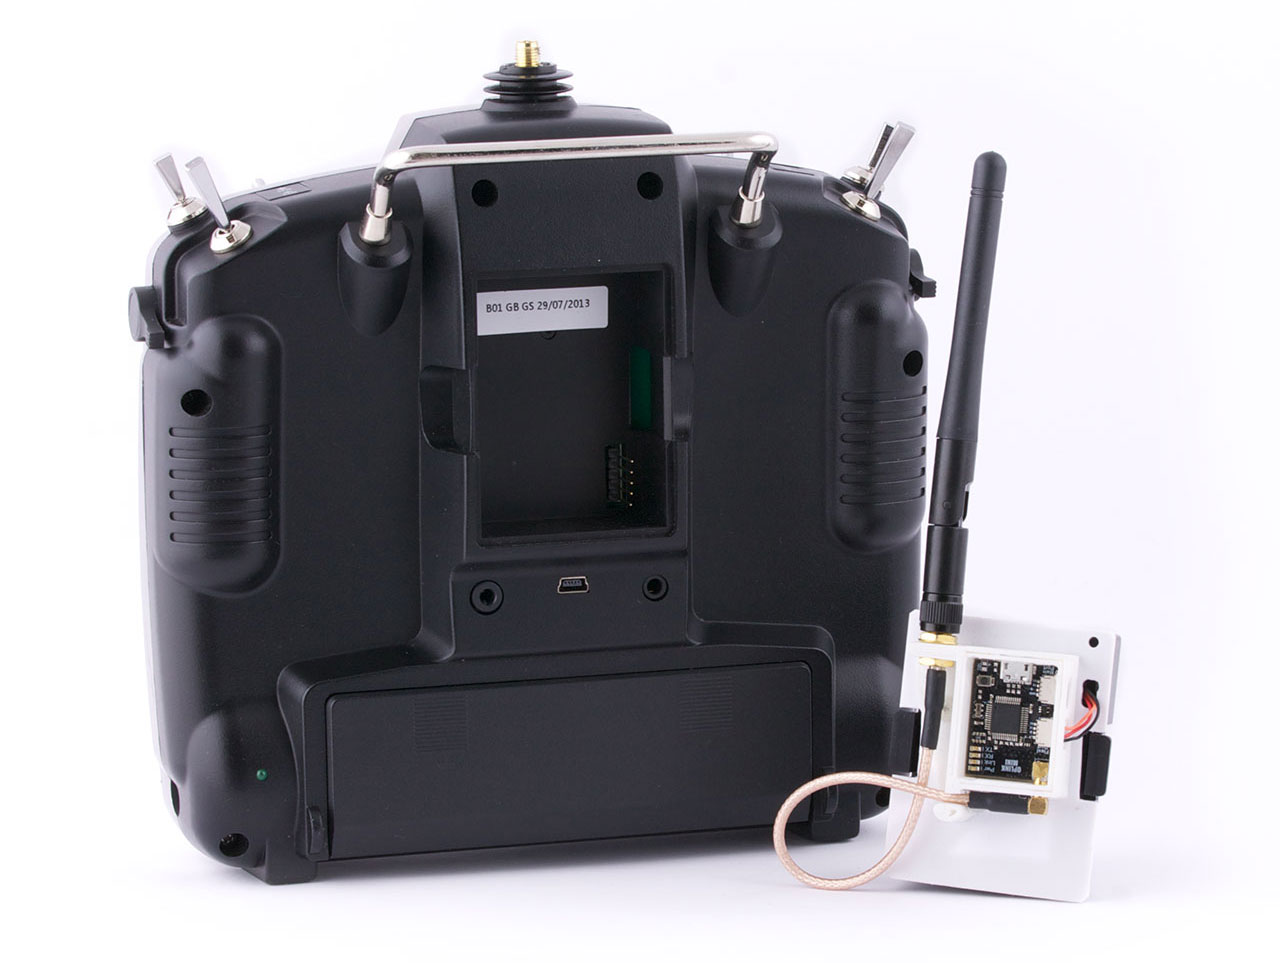 Oplm Vehicle Control Link Librepilot Openpilot Wiki 014 Cc3d Wiring Diagrams 3d Mounting The Oplink Module To Transmitter